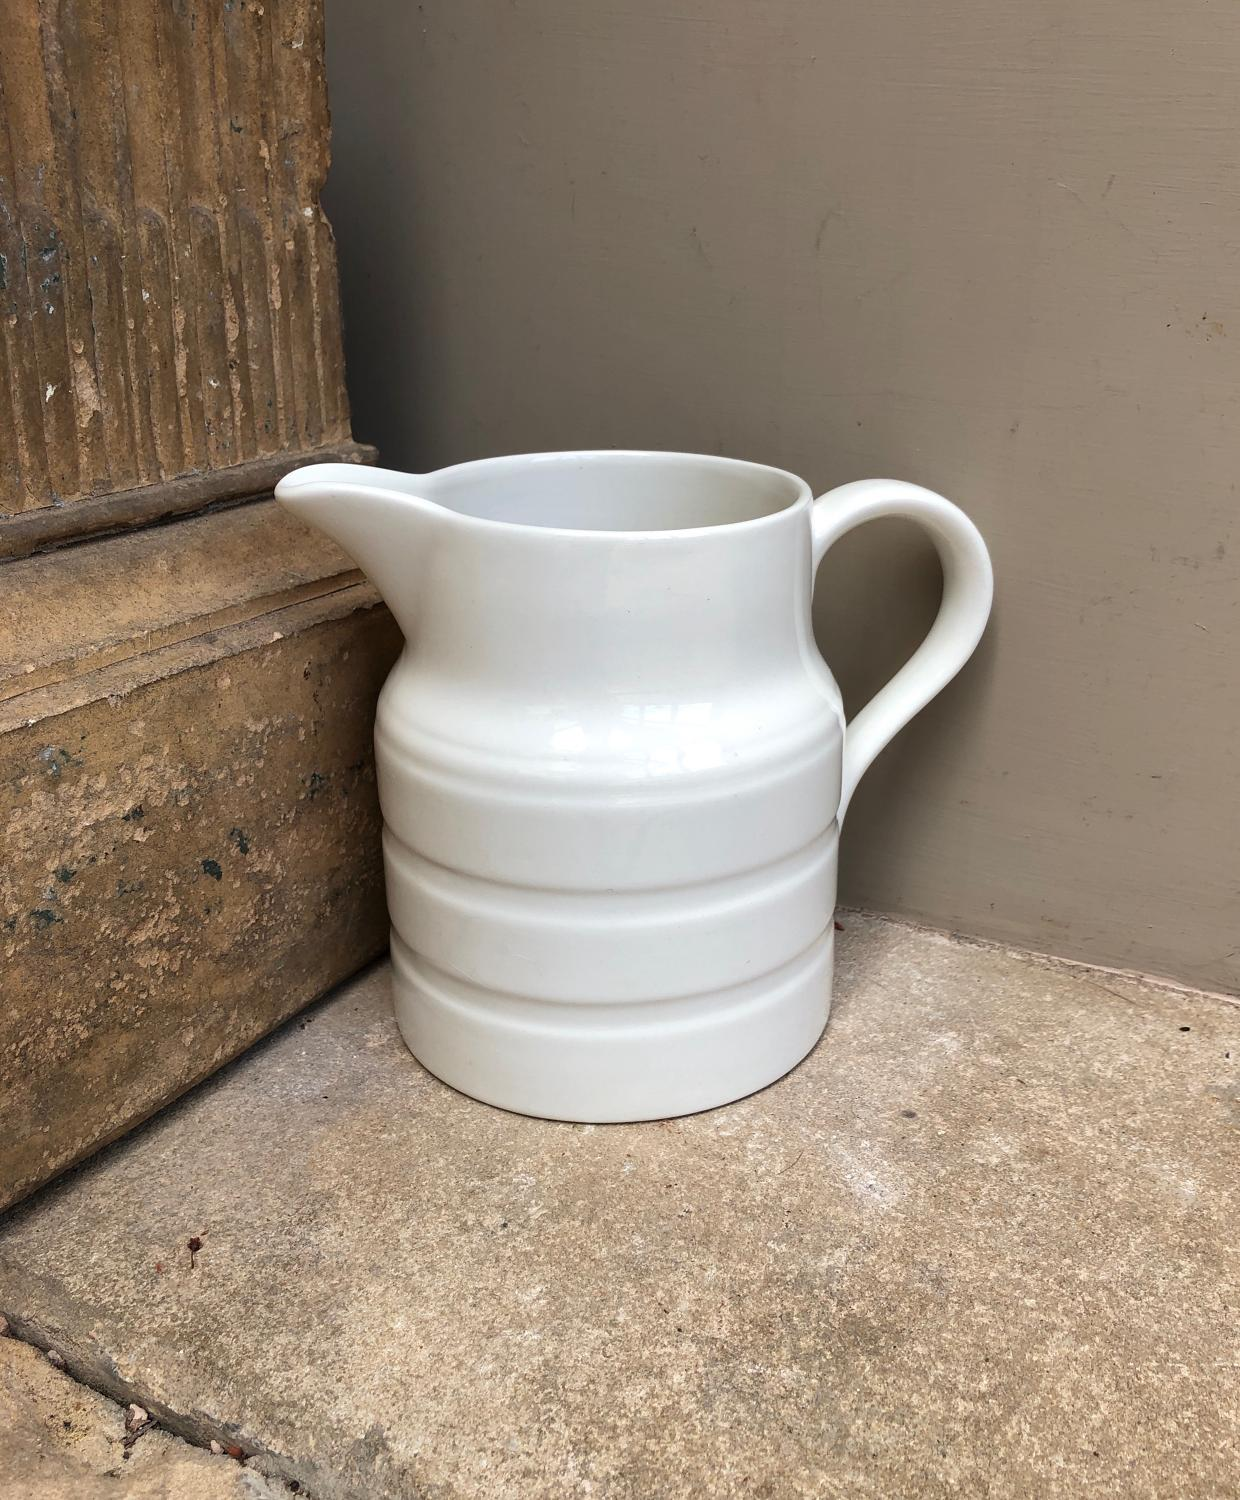 Early 20th Century White Banded Milk Jug - Lord Nelson